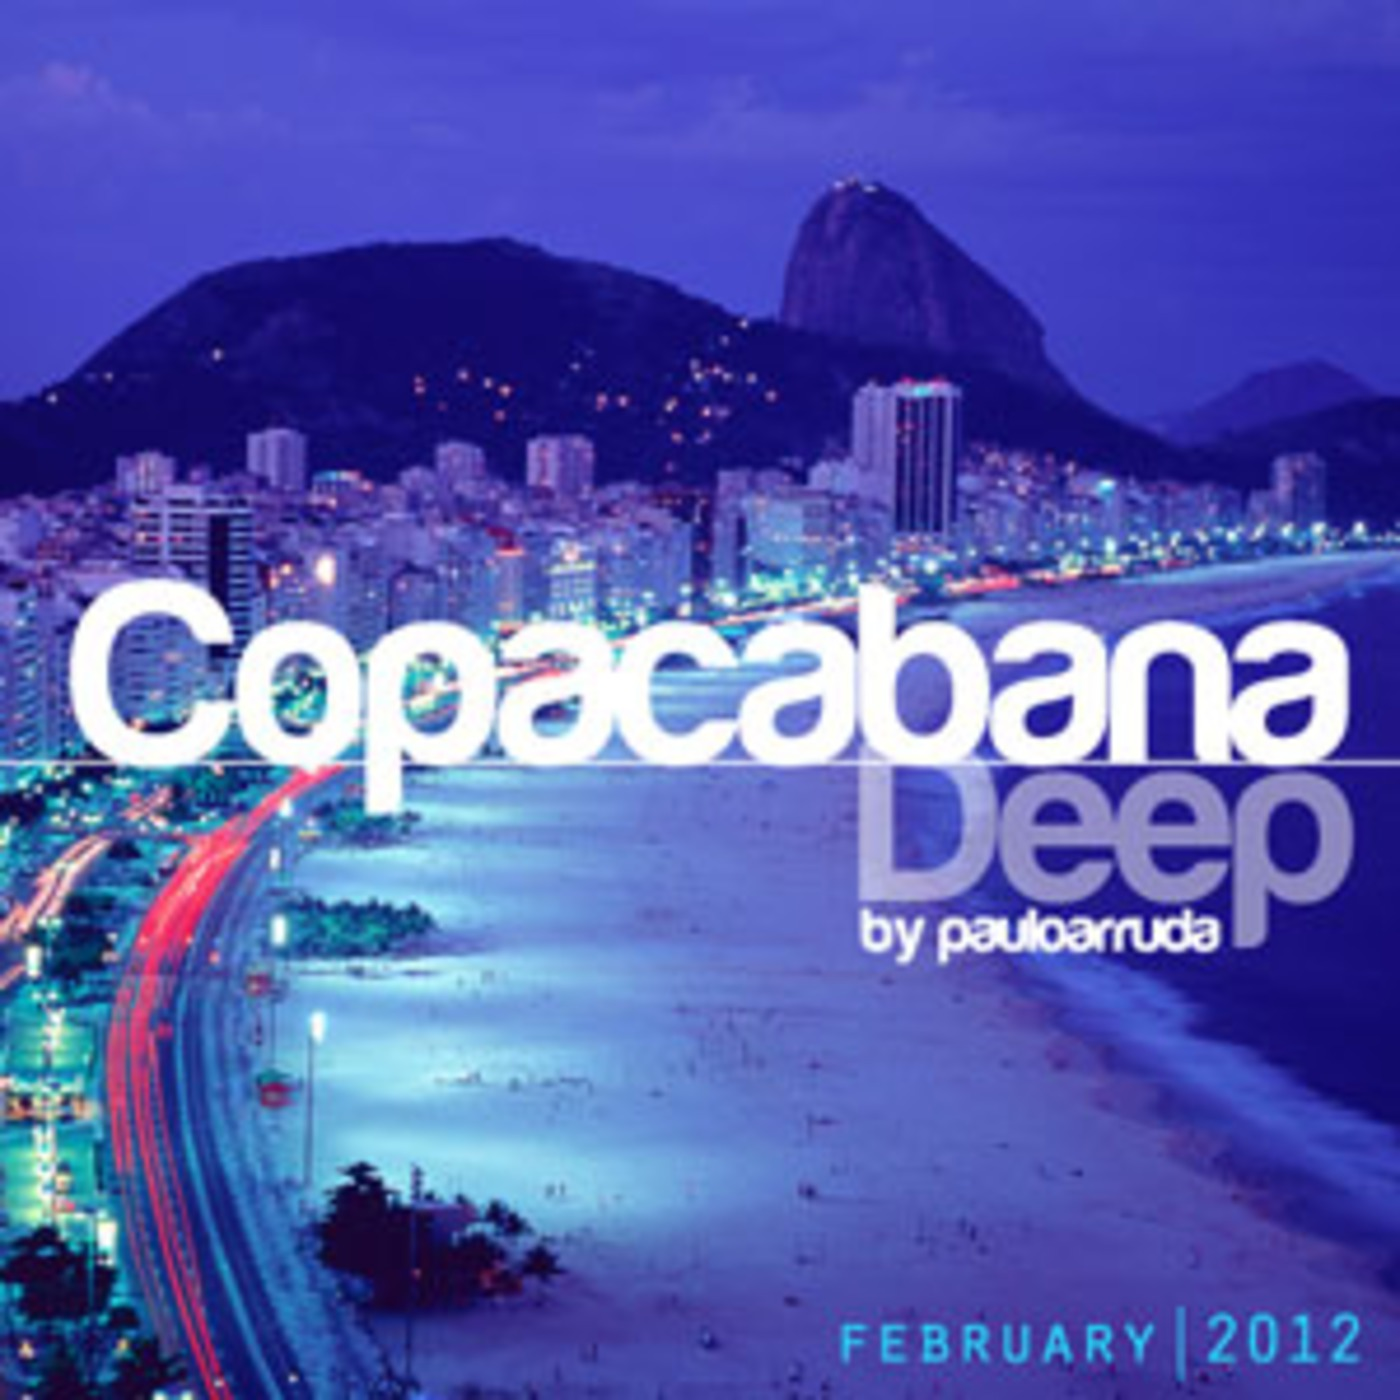 Itunes pic for Brazilian house music